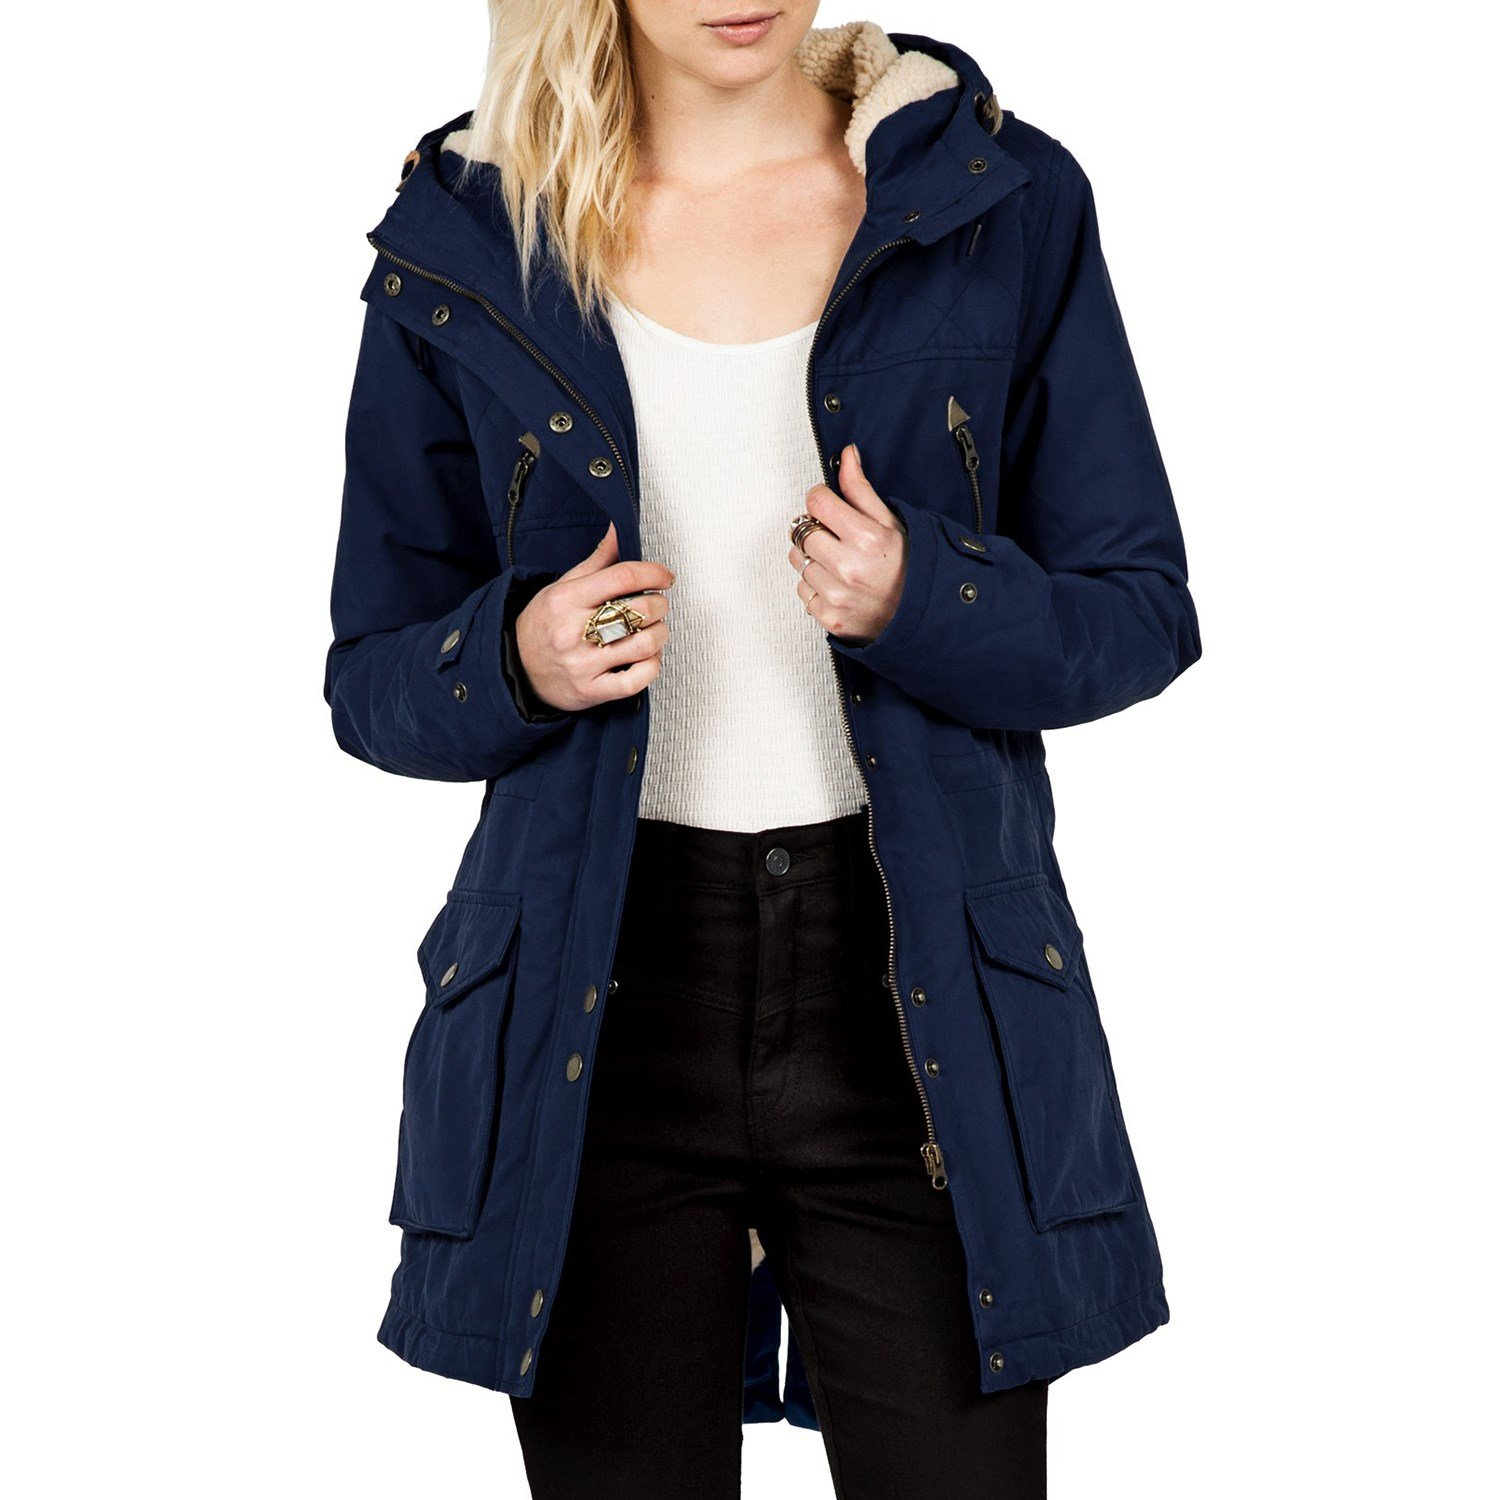 Navy Blue Parka Coat Womens - Coat Racks